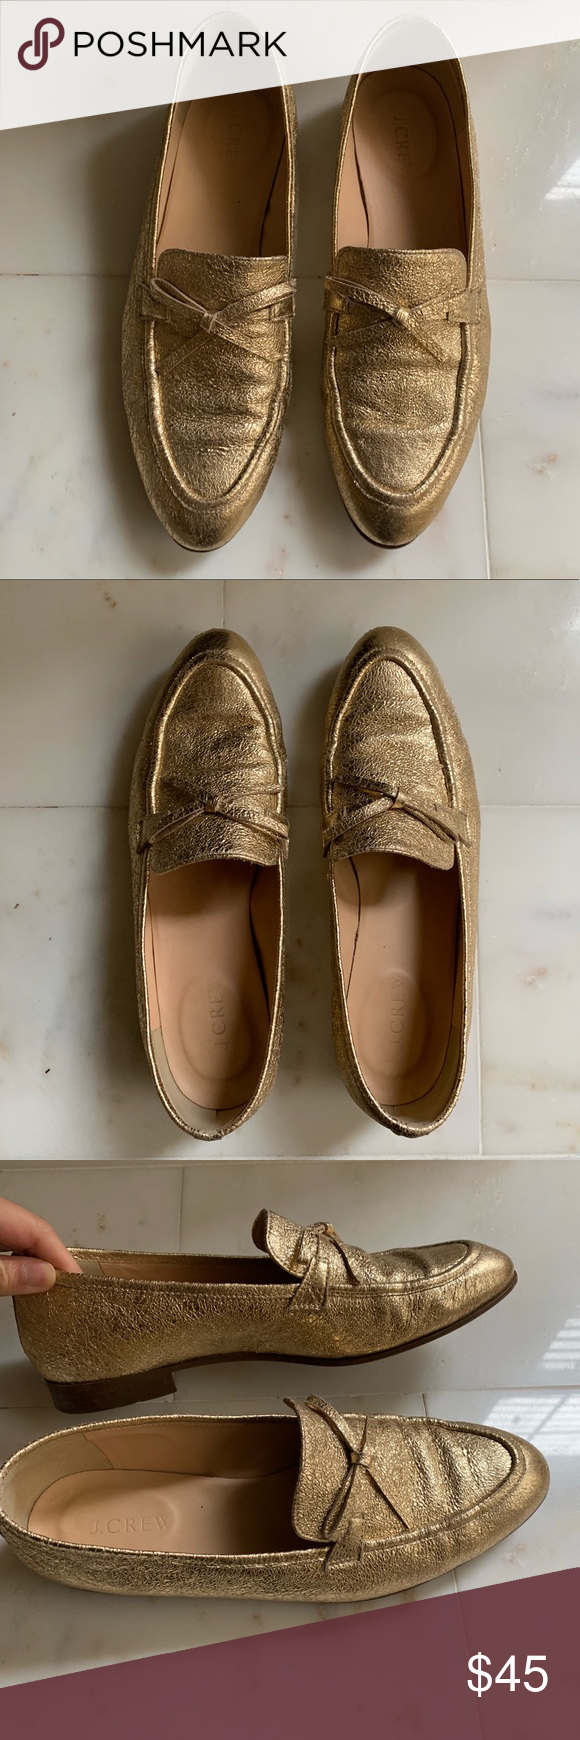 634d01c4f58 J Crew Academy Loafers Gold loafers. So comfy. Good used condition ...